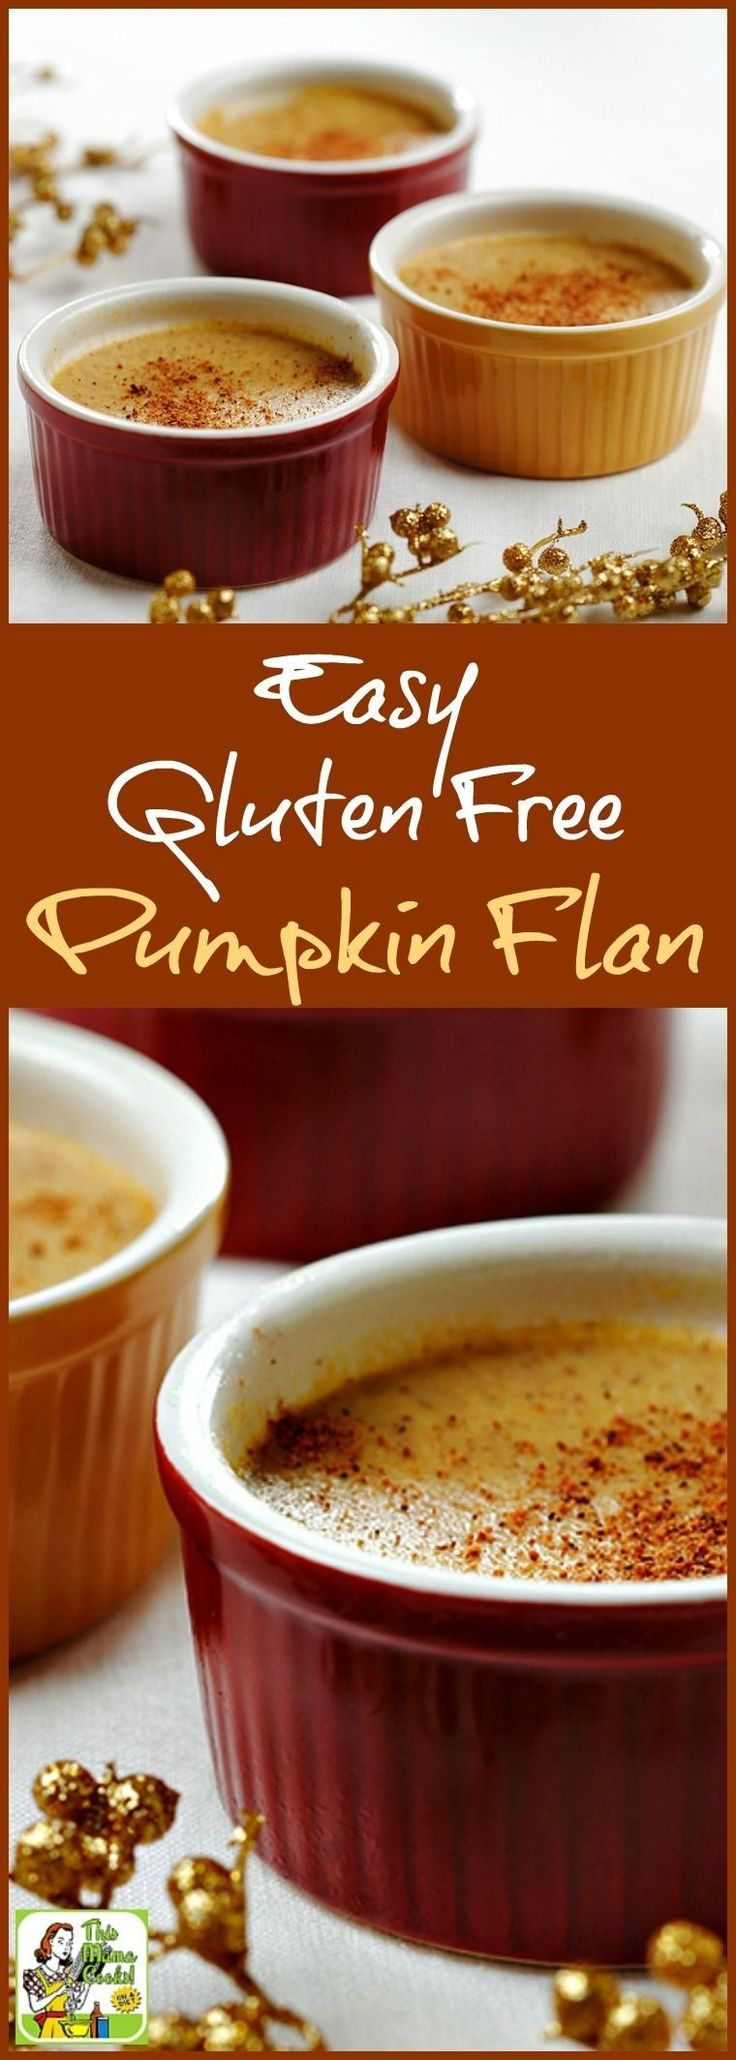 This Easy Gluten Free Pumpkin Flan can be made dairy free. Click to try this easy pumpkin dessert recipe for Thanksgiving, Halloween or the Fall.